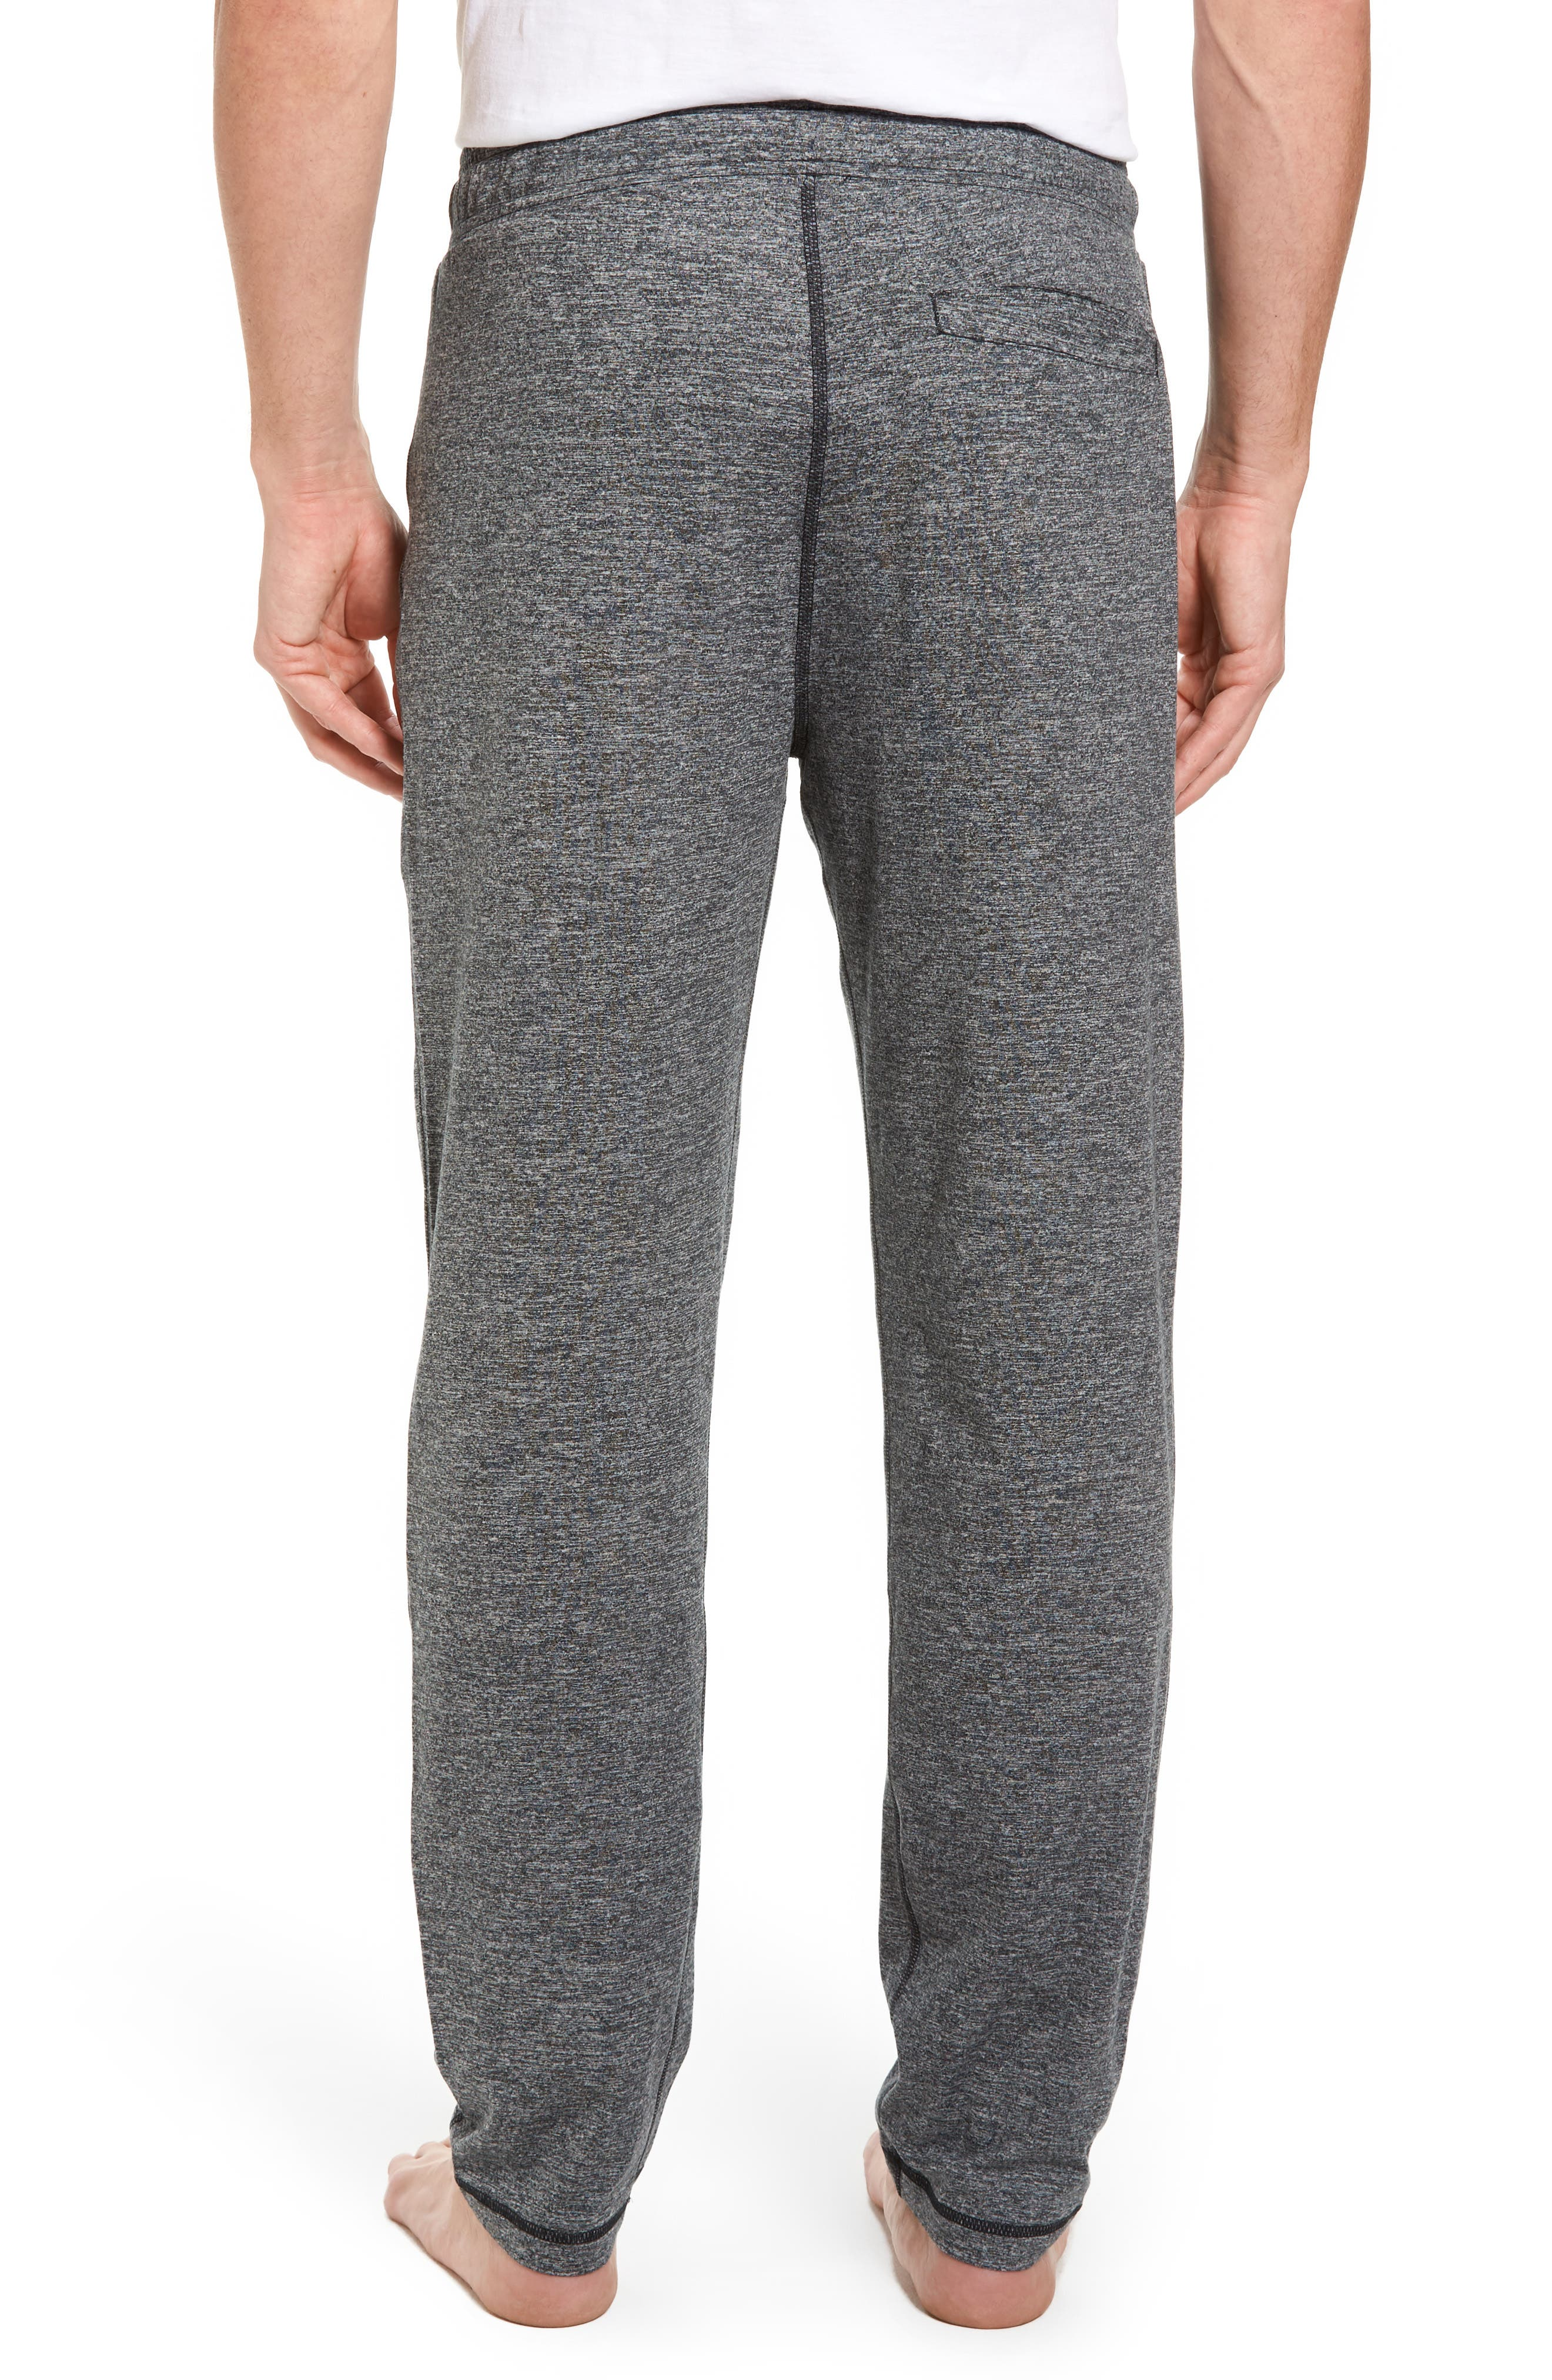 Renew Relaxed Lounge Pants,                             Alternate thumbnail 2, color,                             Grey Marl